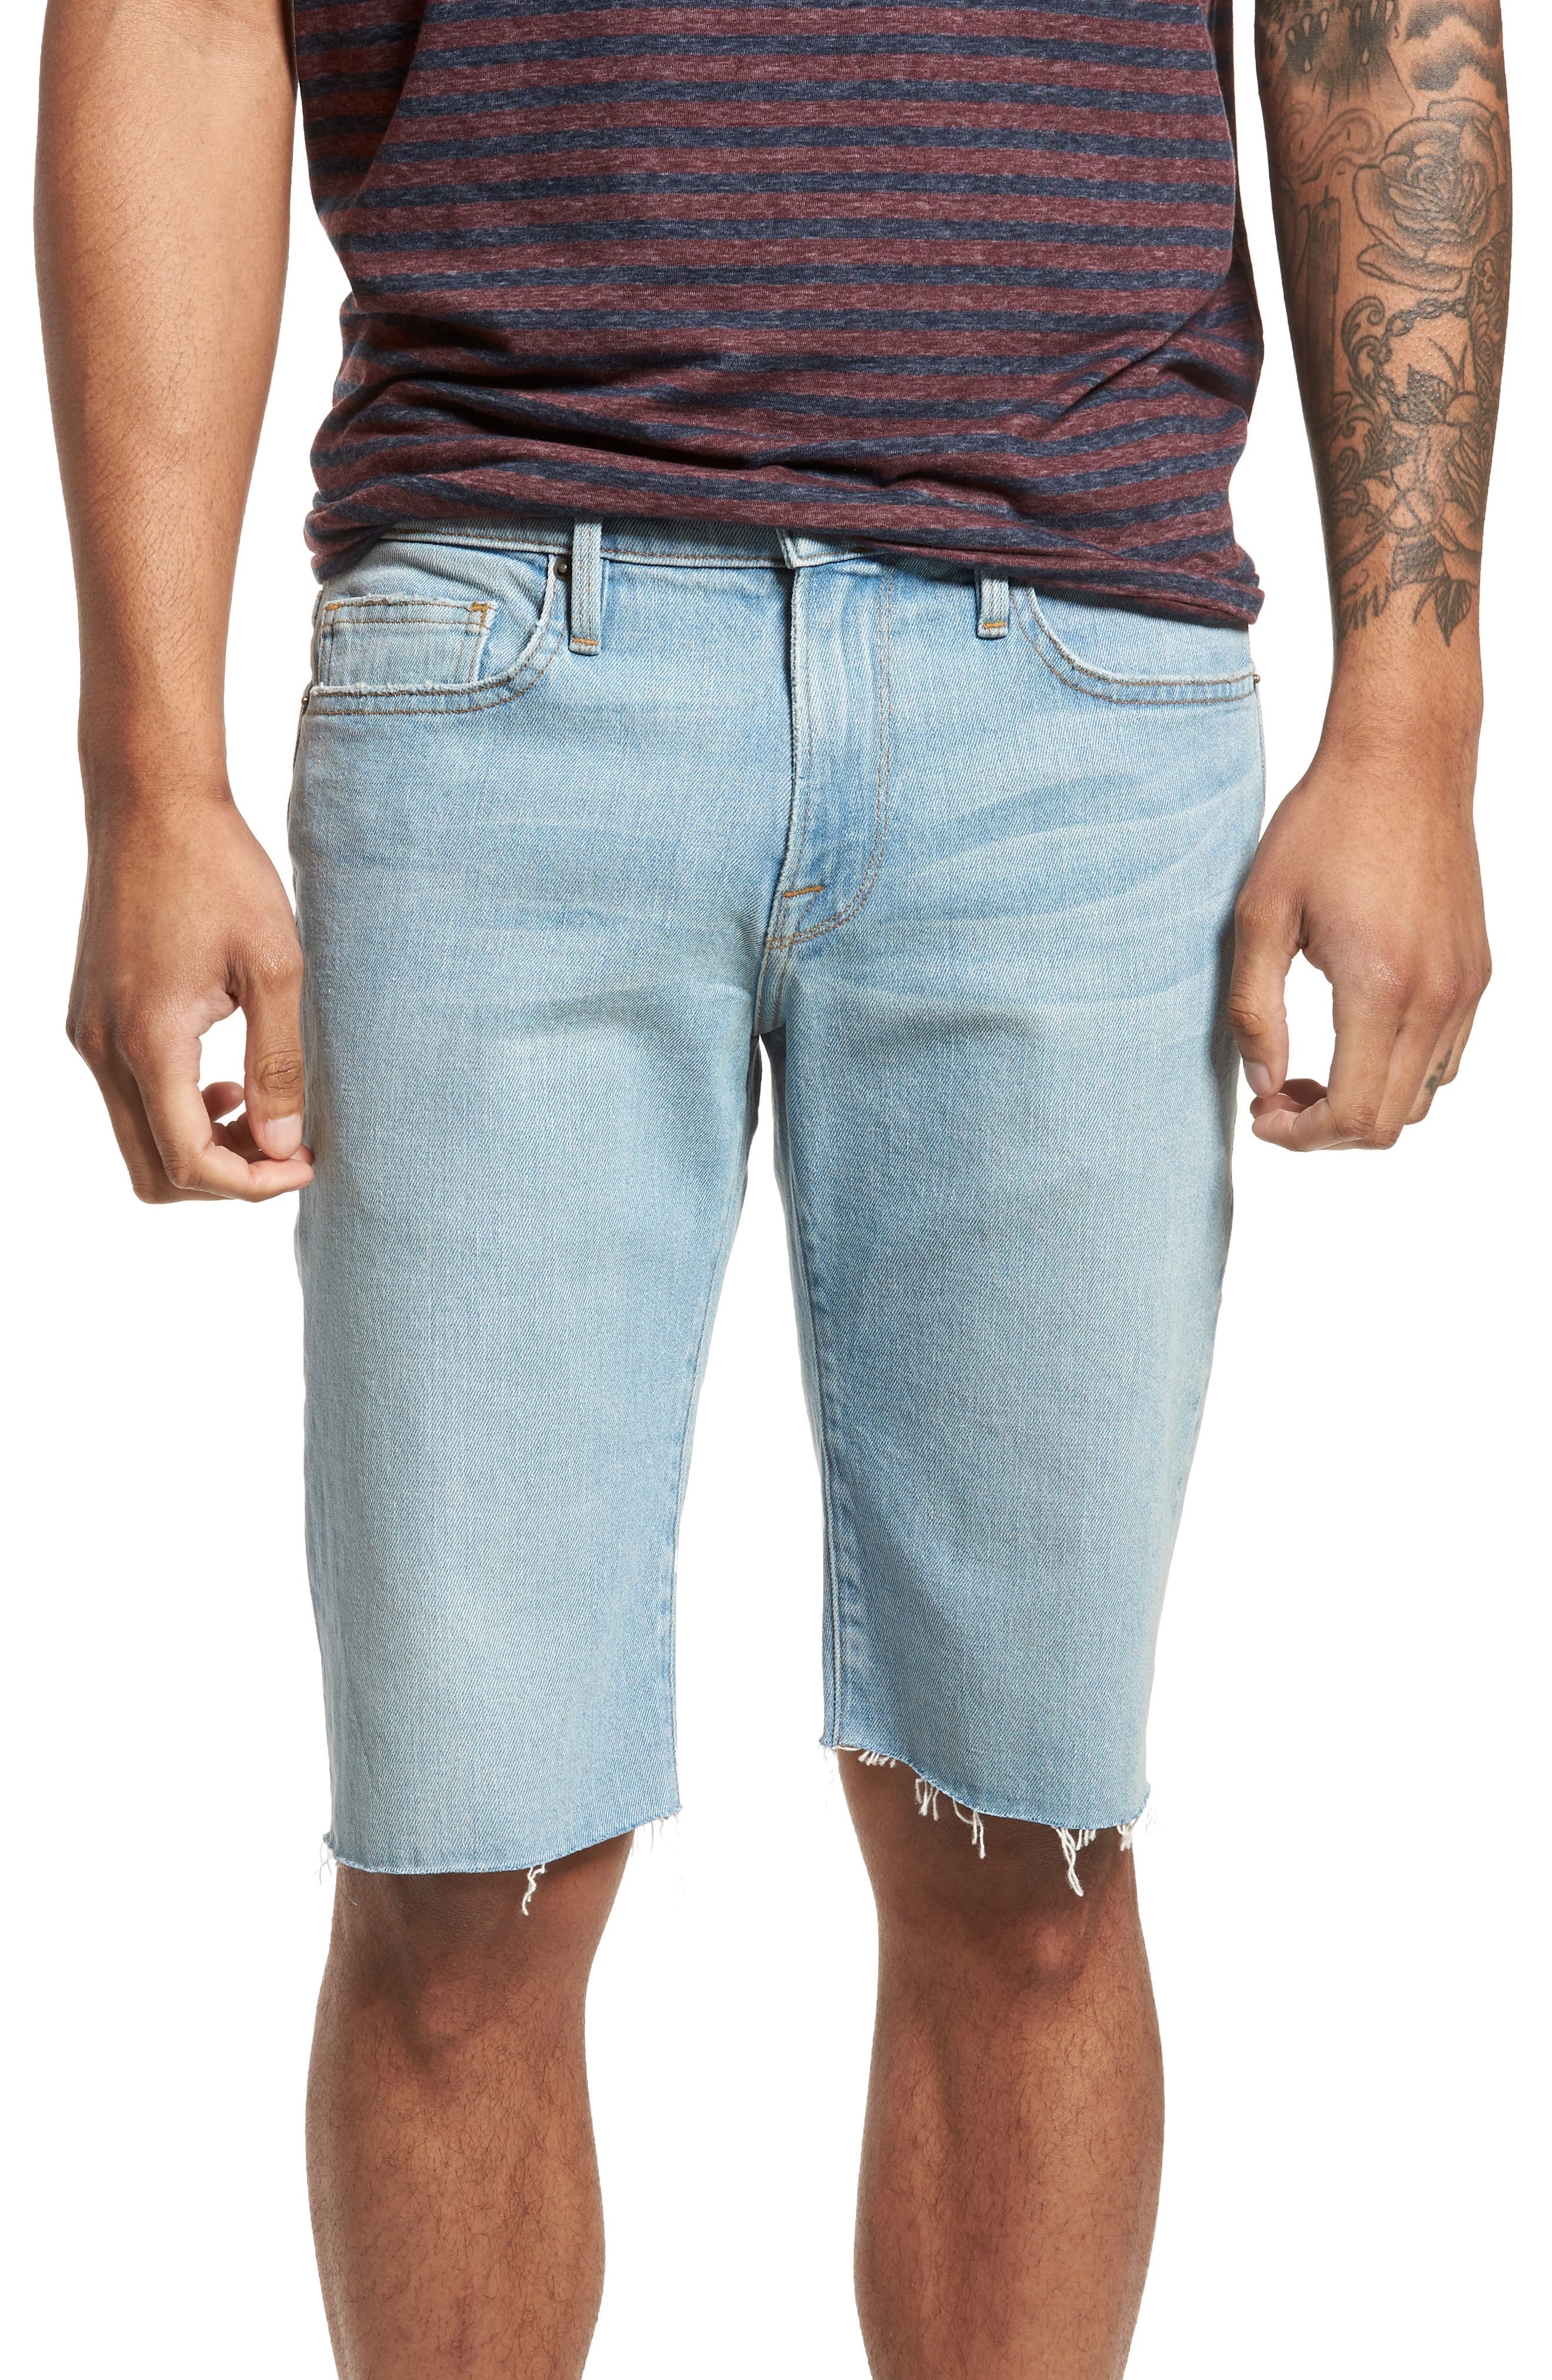 L'Homme Cutoff Denim Shorts,                             Main thumbnail 1, color,                             Crosby